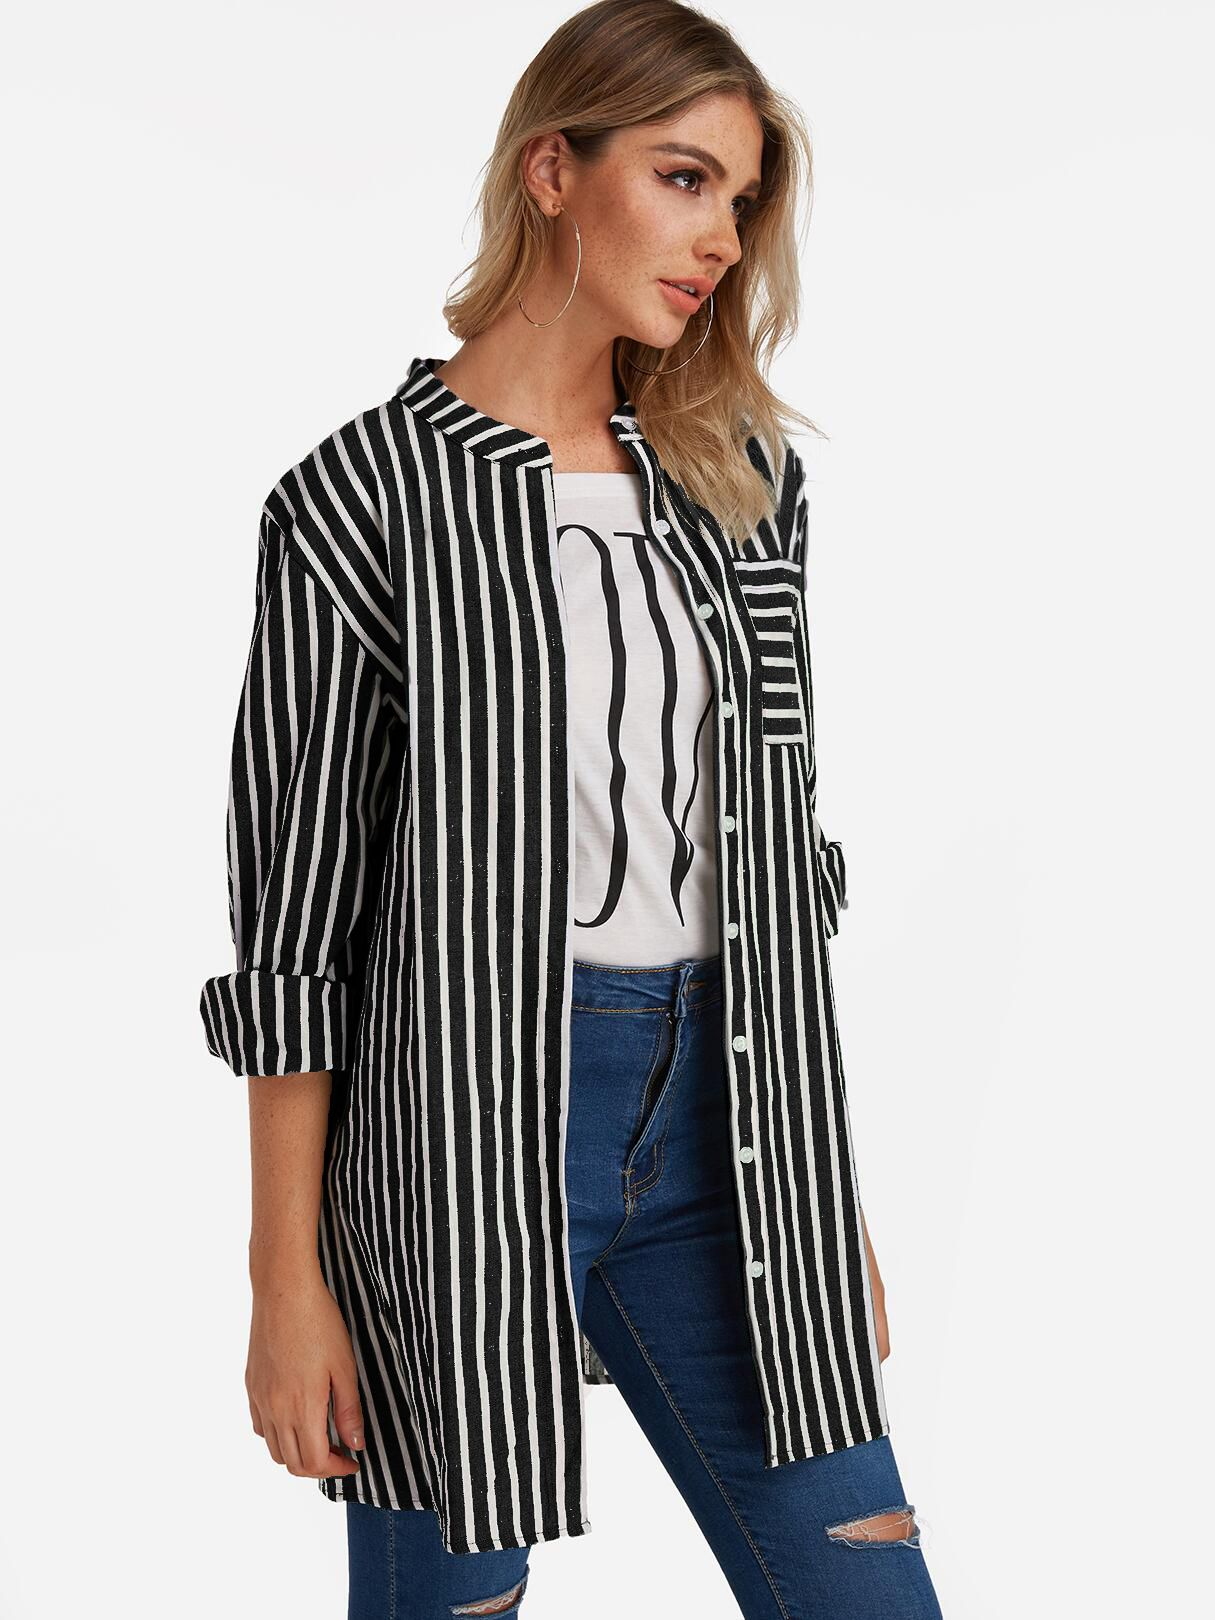 Striped Long Sleeve Shirts for Women with Blue jeans